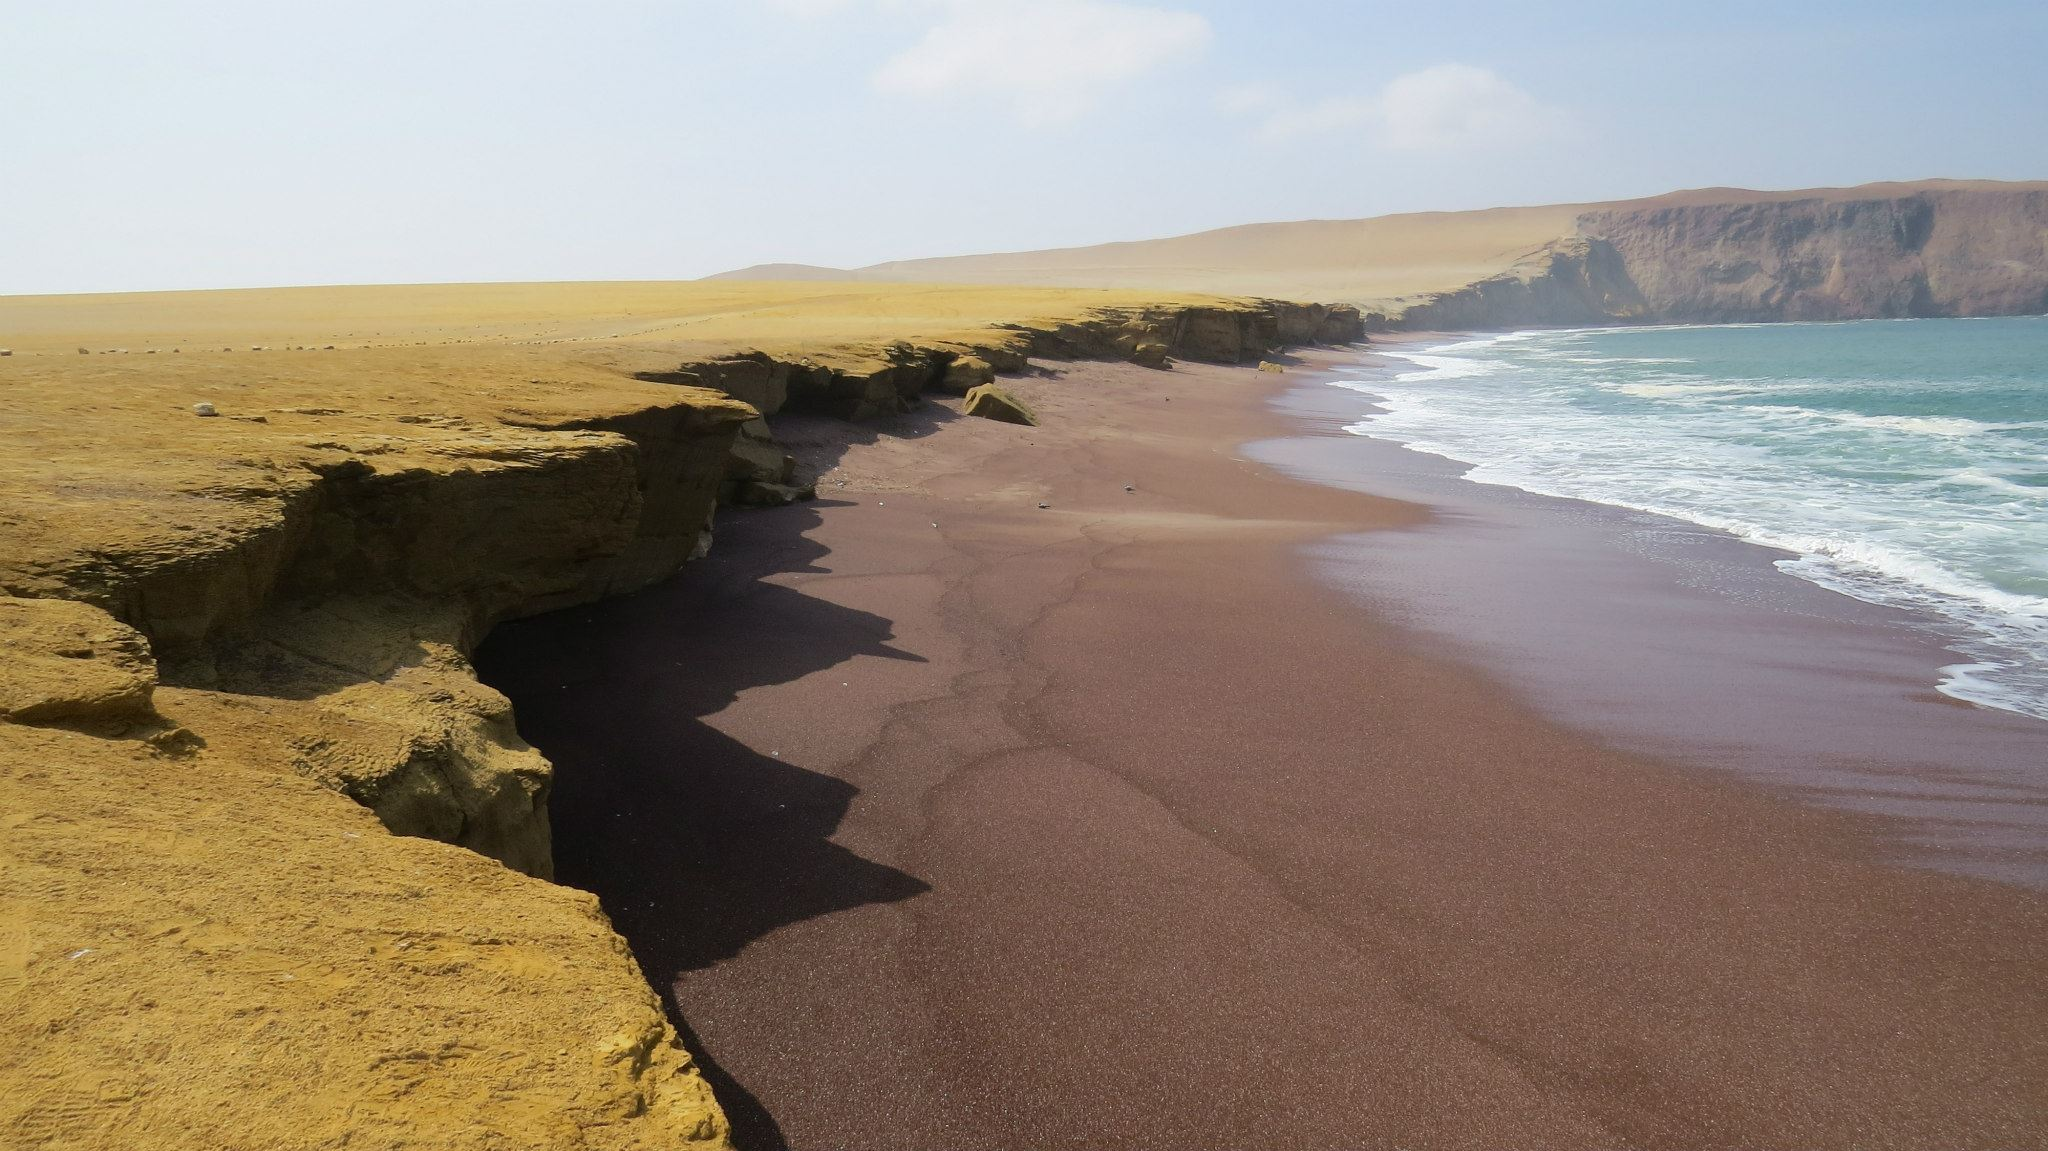 Red Beach, Paracas Reserve, Peru (photo: Dr. Mary Brown, CC BY-NC-SA 2.0)